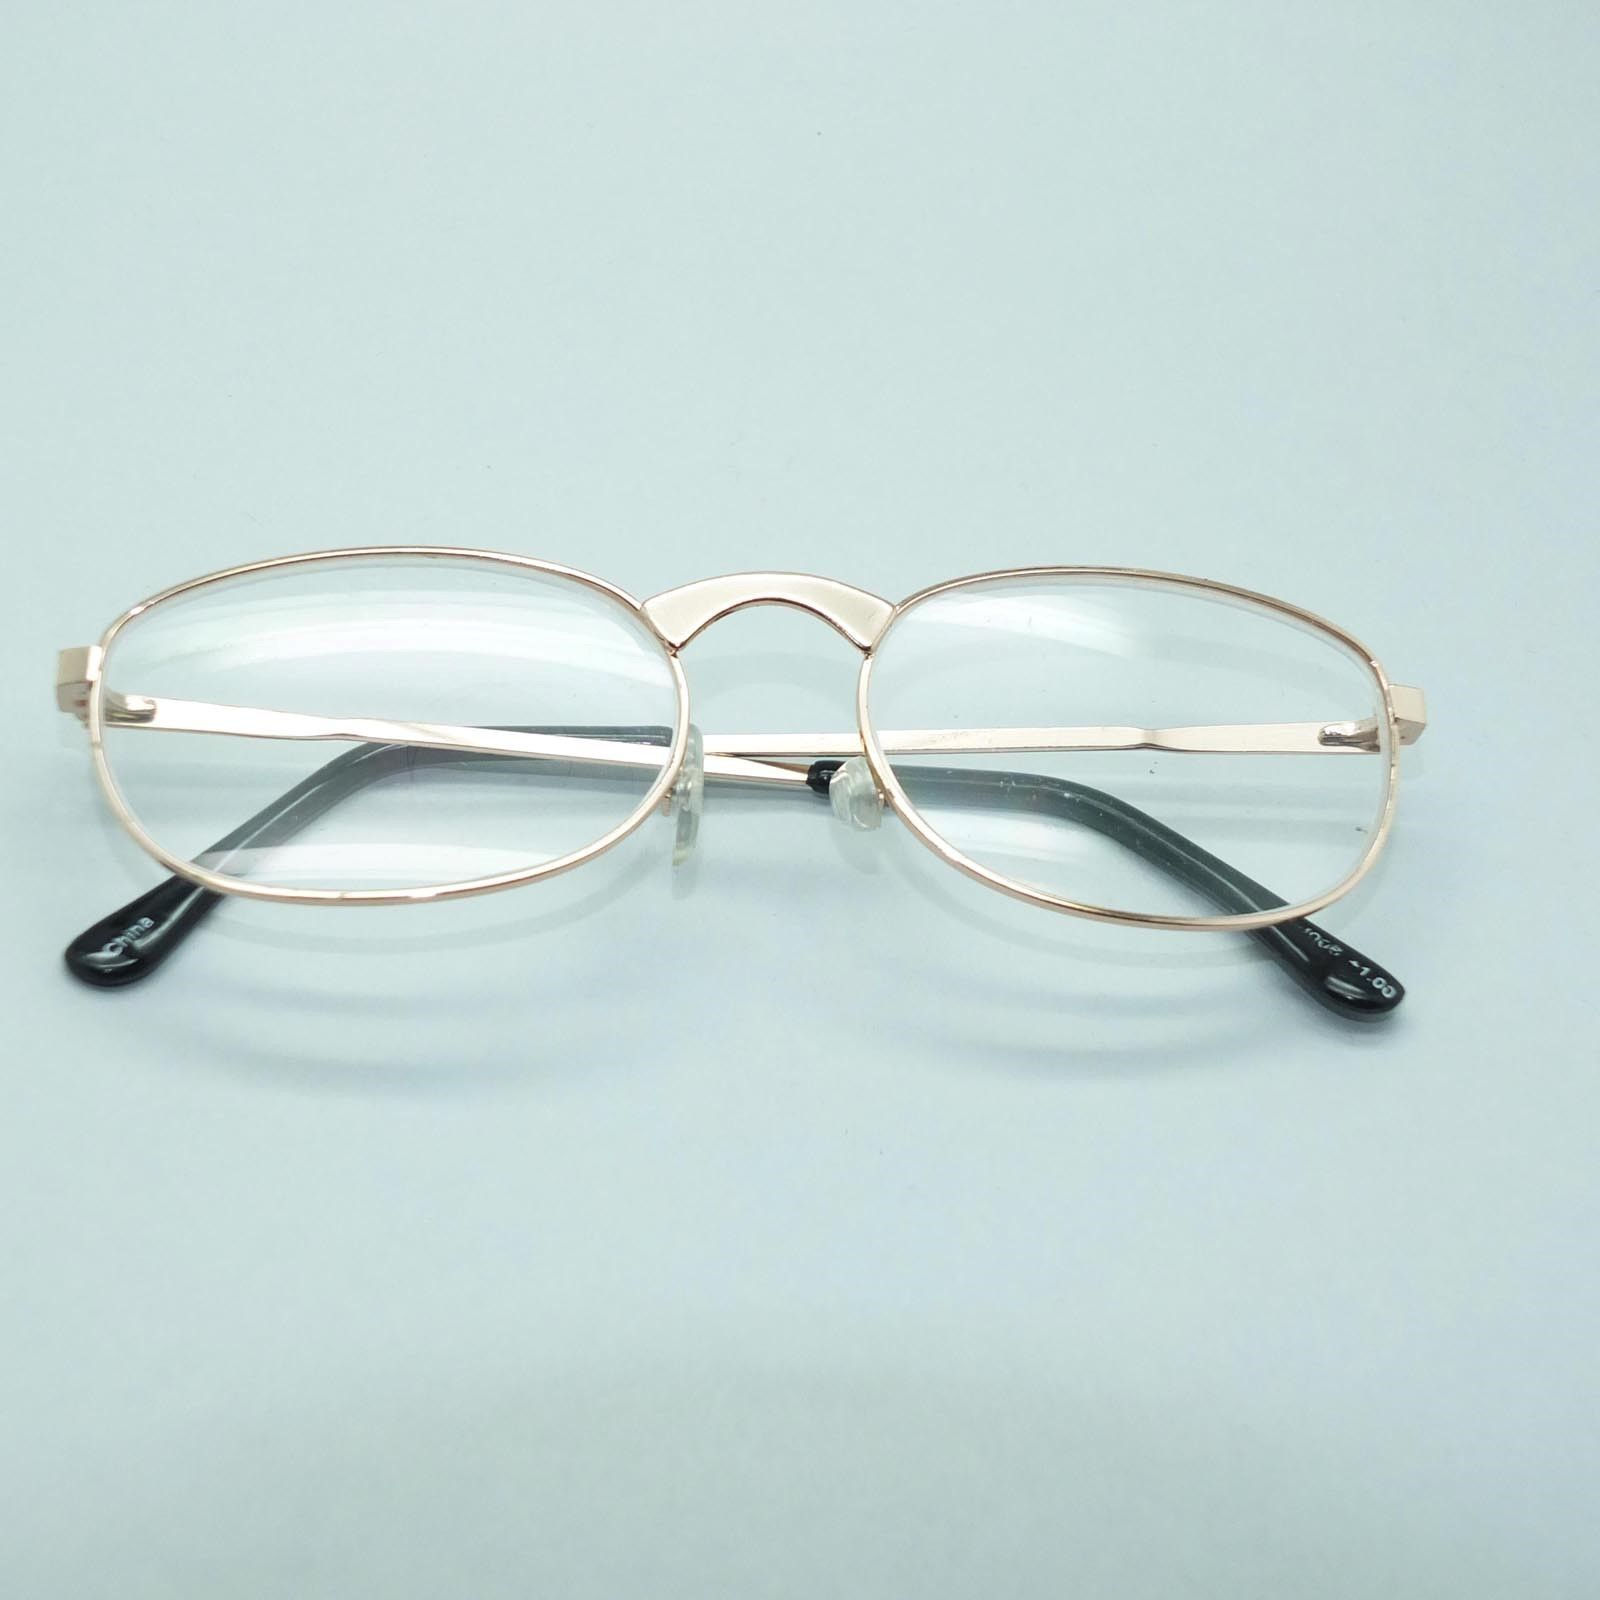 Women's Gold Metal Wire Frame Oval Classic Simple Reading Glasses +1.00 Lens